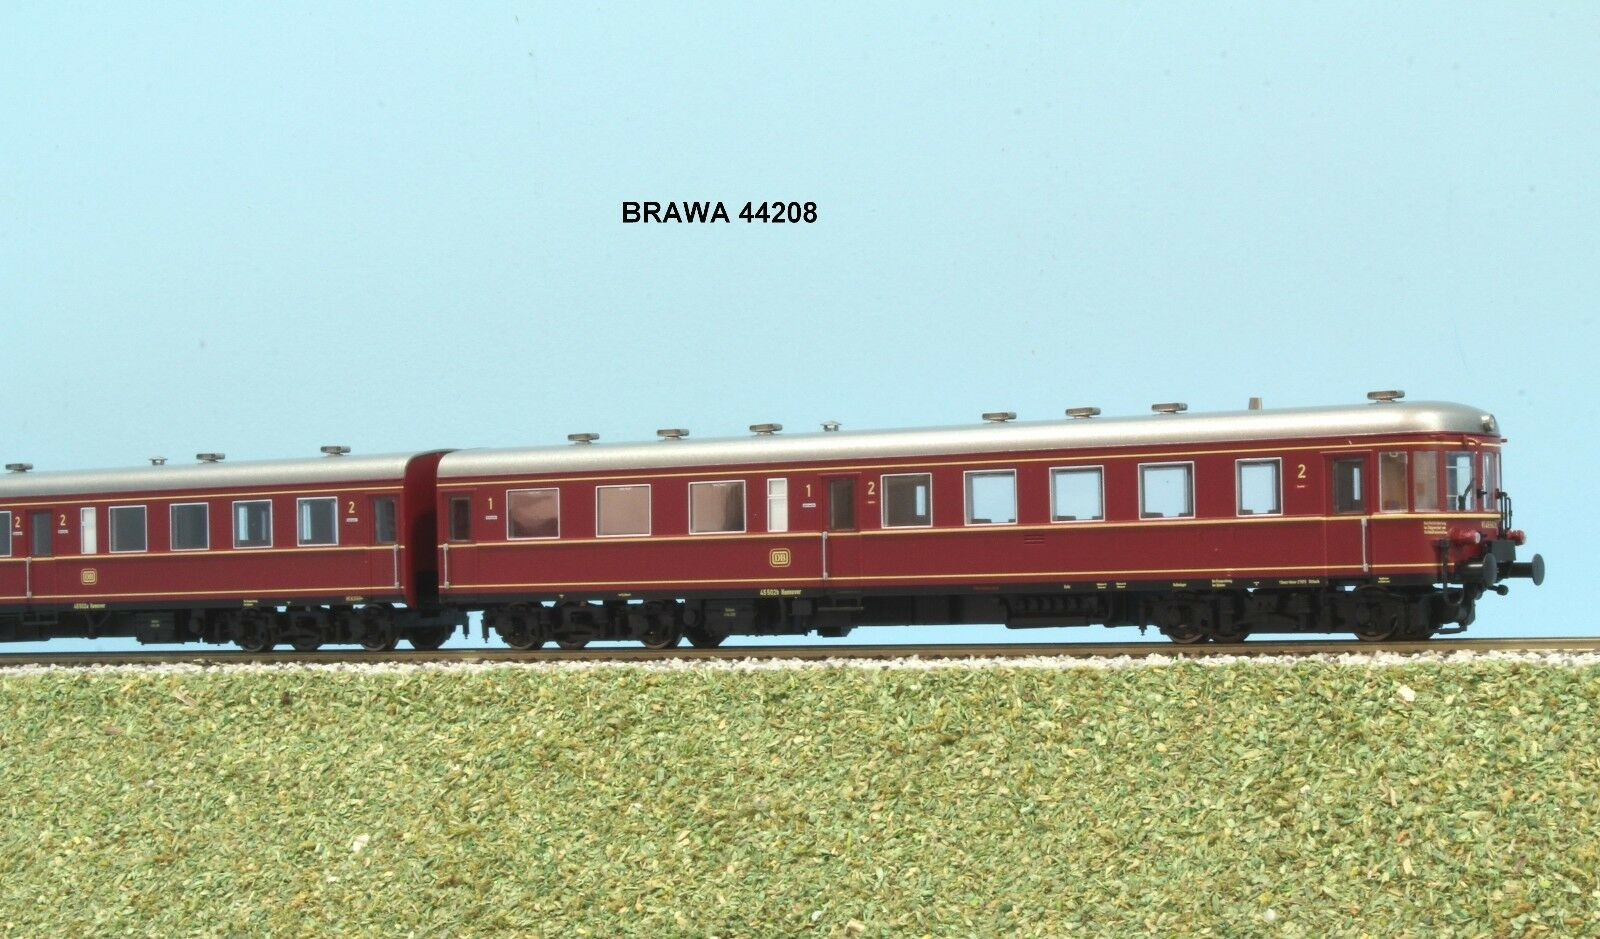 Brawa 44208 DB Road Train 2 pcs VT 137 Stettin EP. III White and red livery